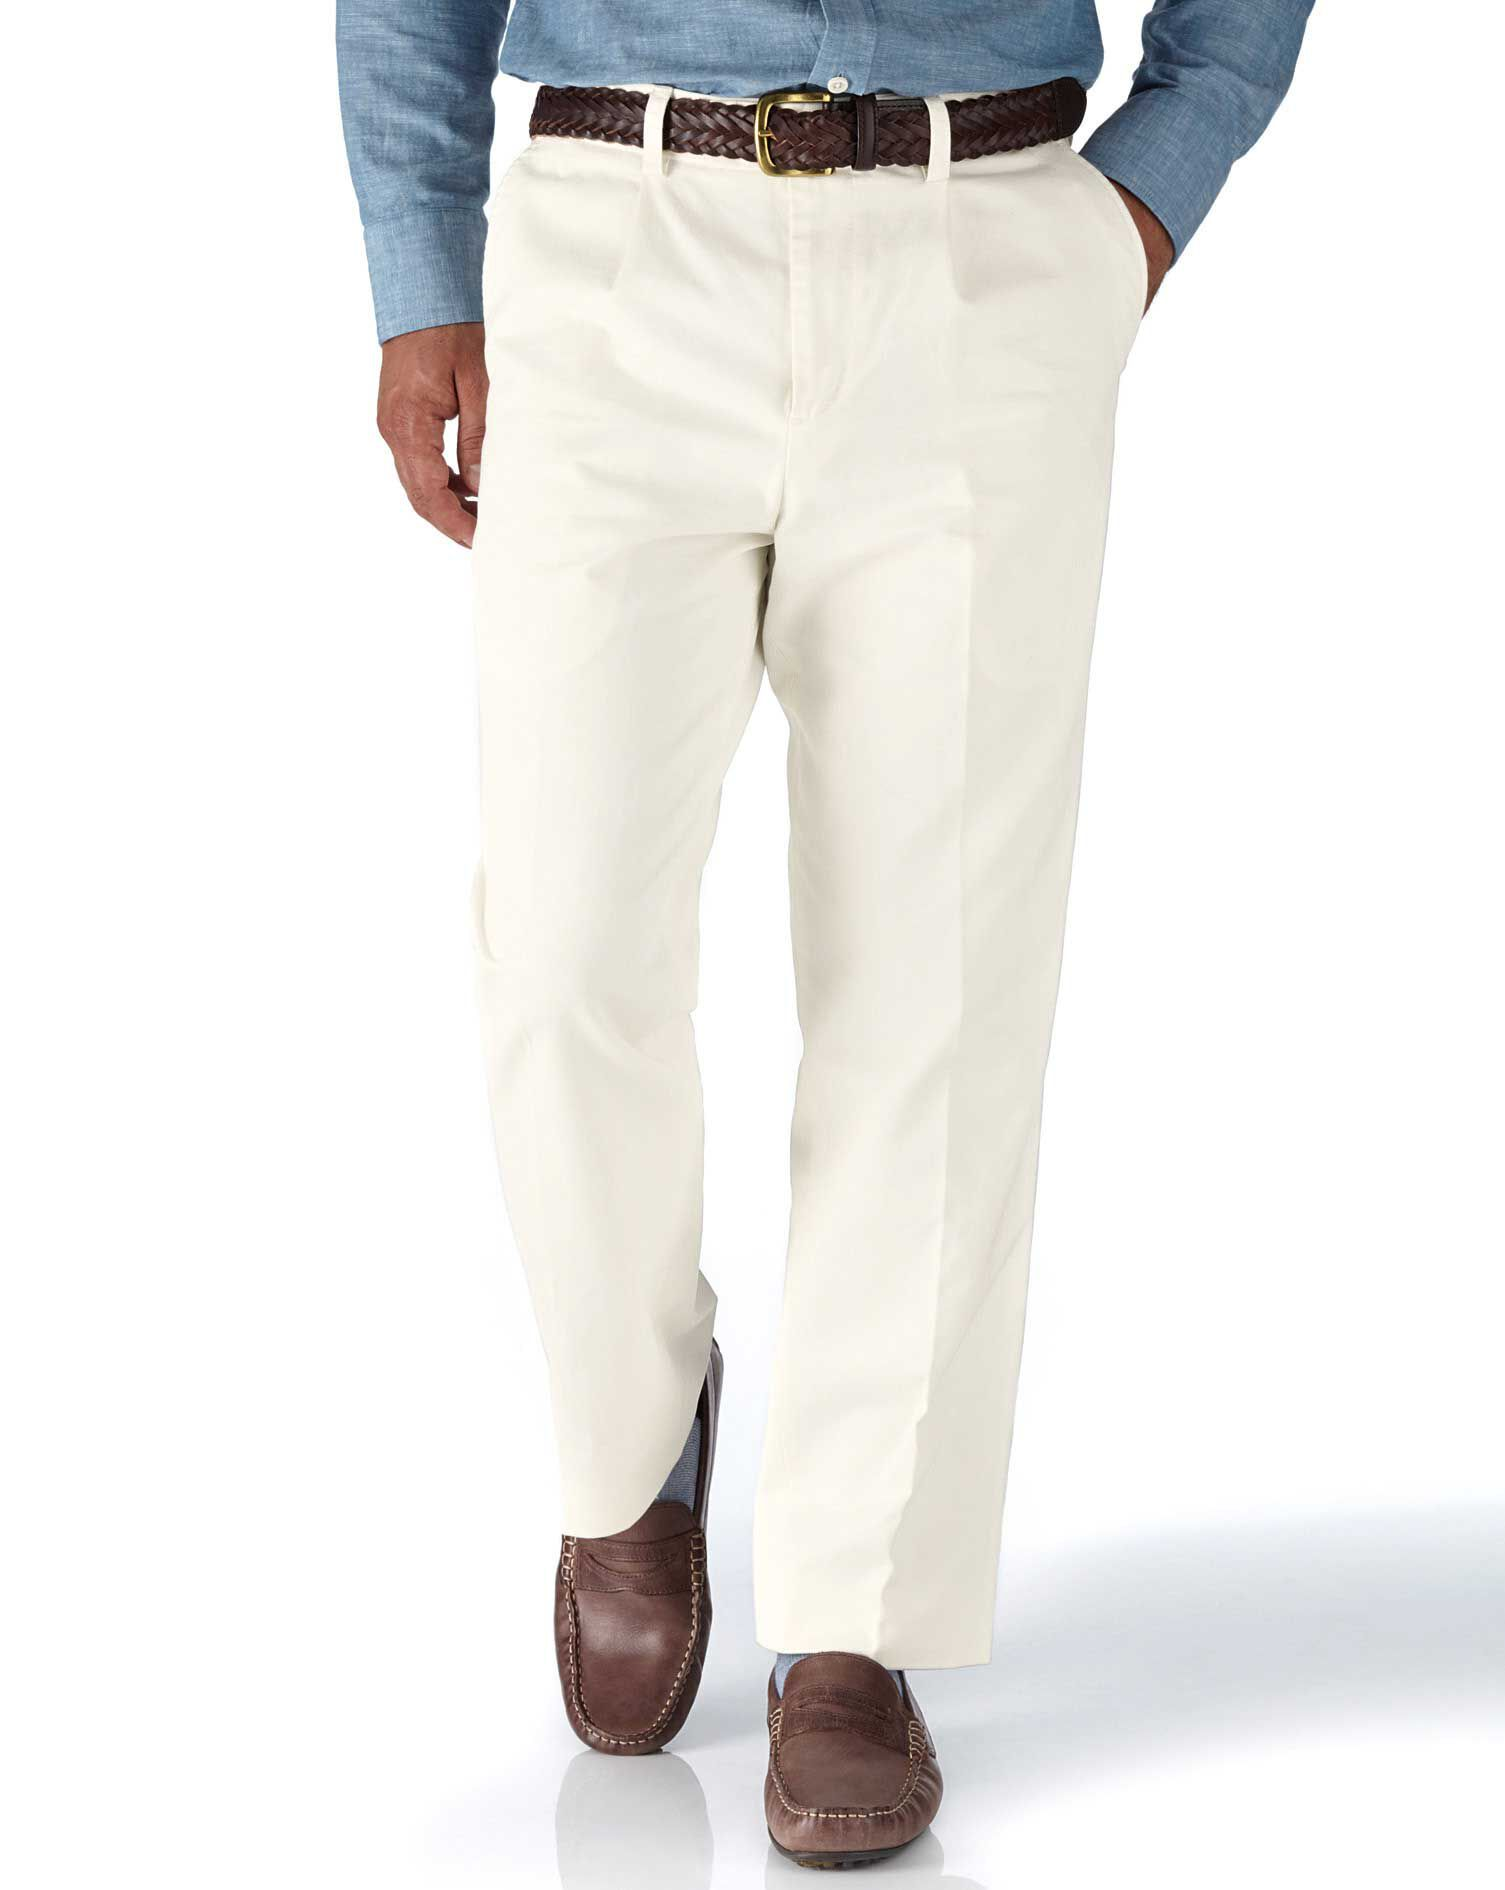 White Classic Fit Single Pleat Weekend Cotton Chino Trousers Size W36 L30 by Charles Tyrwhitt